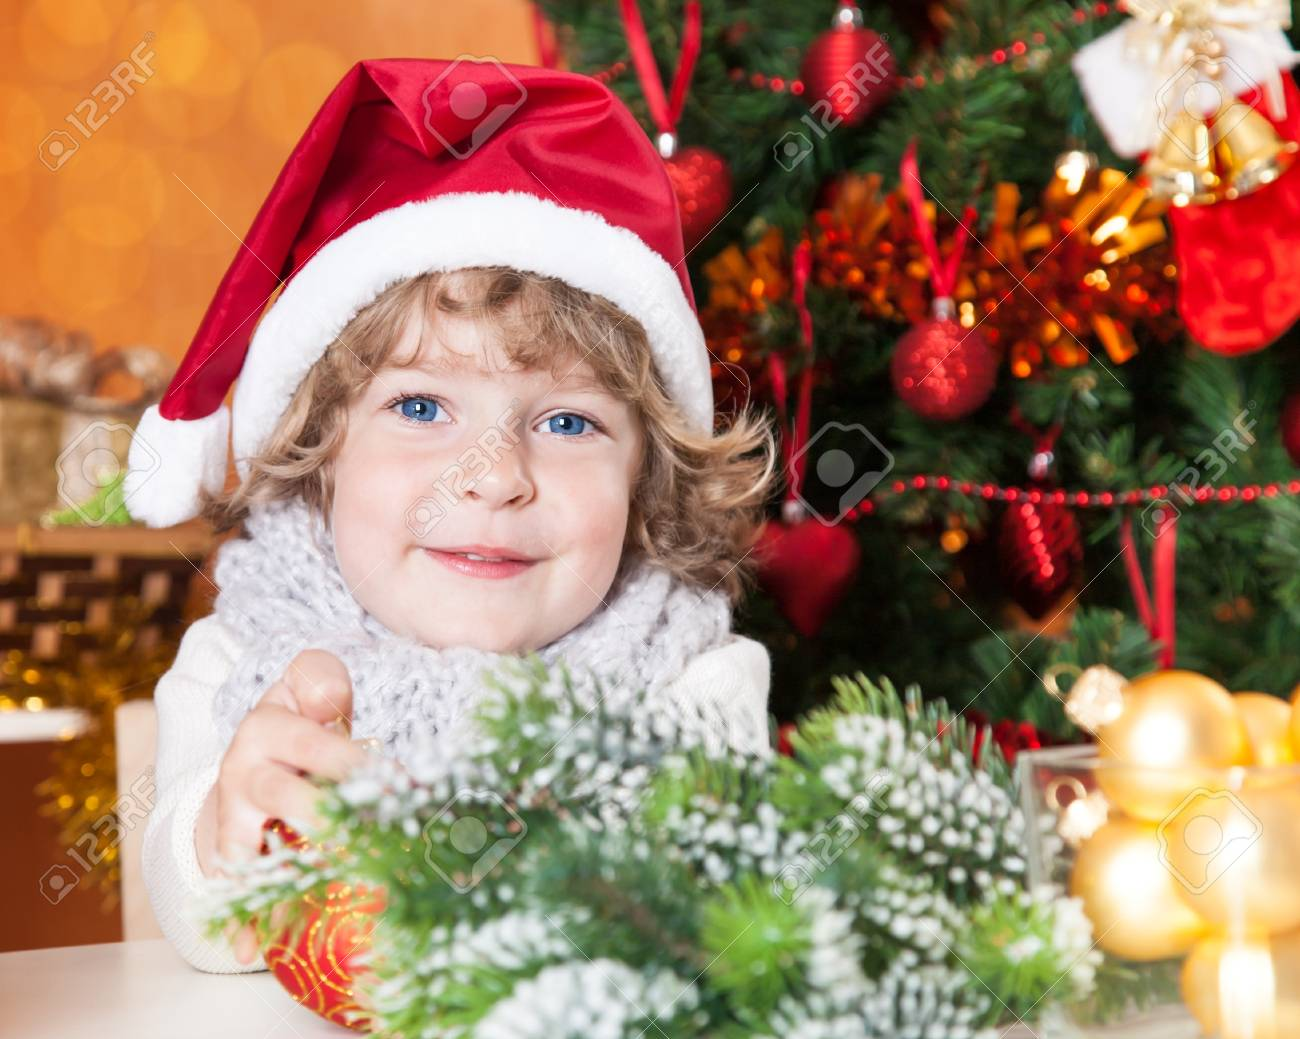 Happy child in Santa hat against Christmas tree with decorations Stock Photo - 14585702